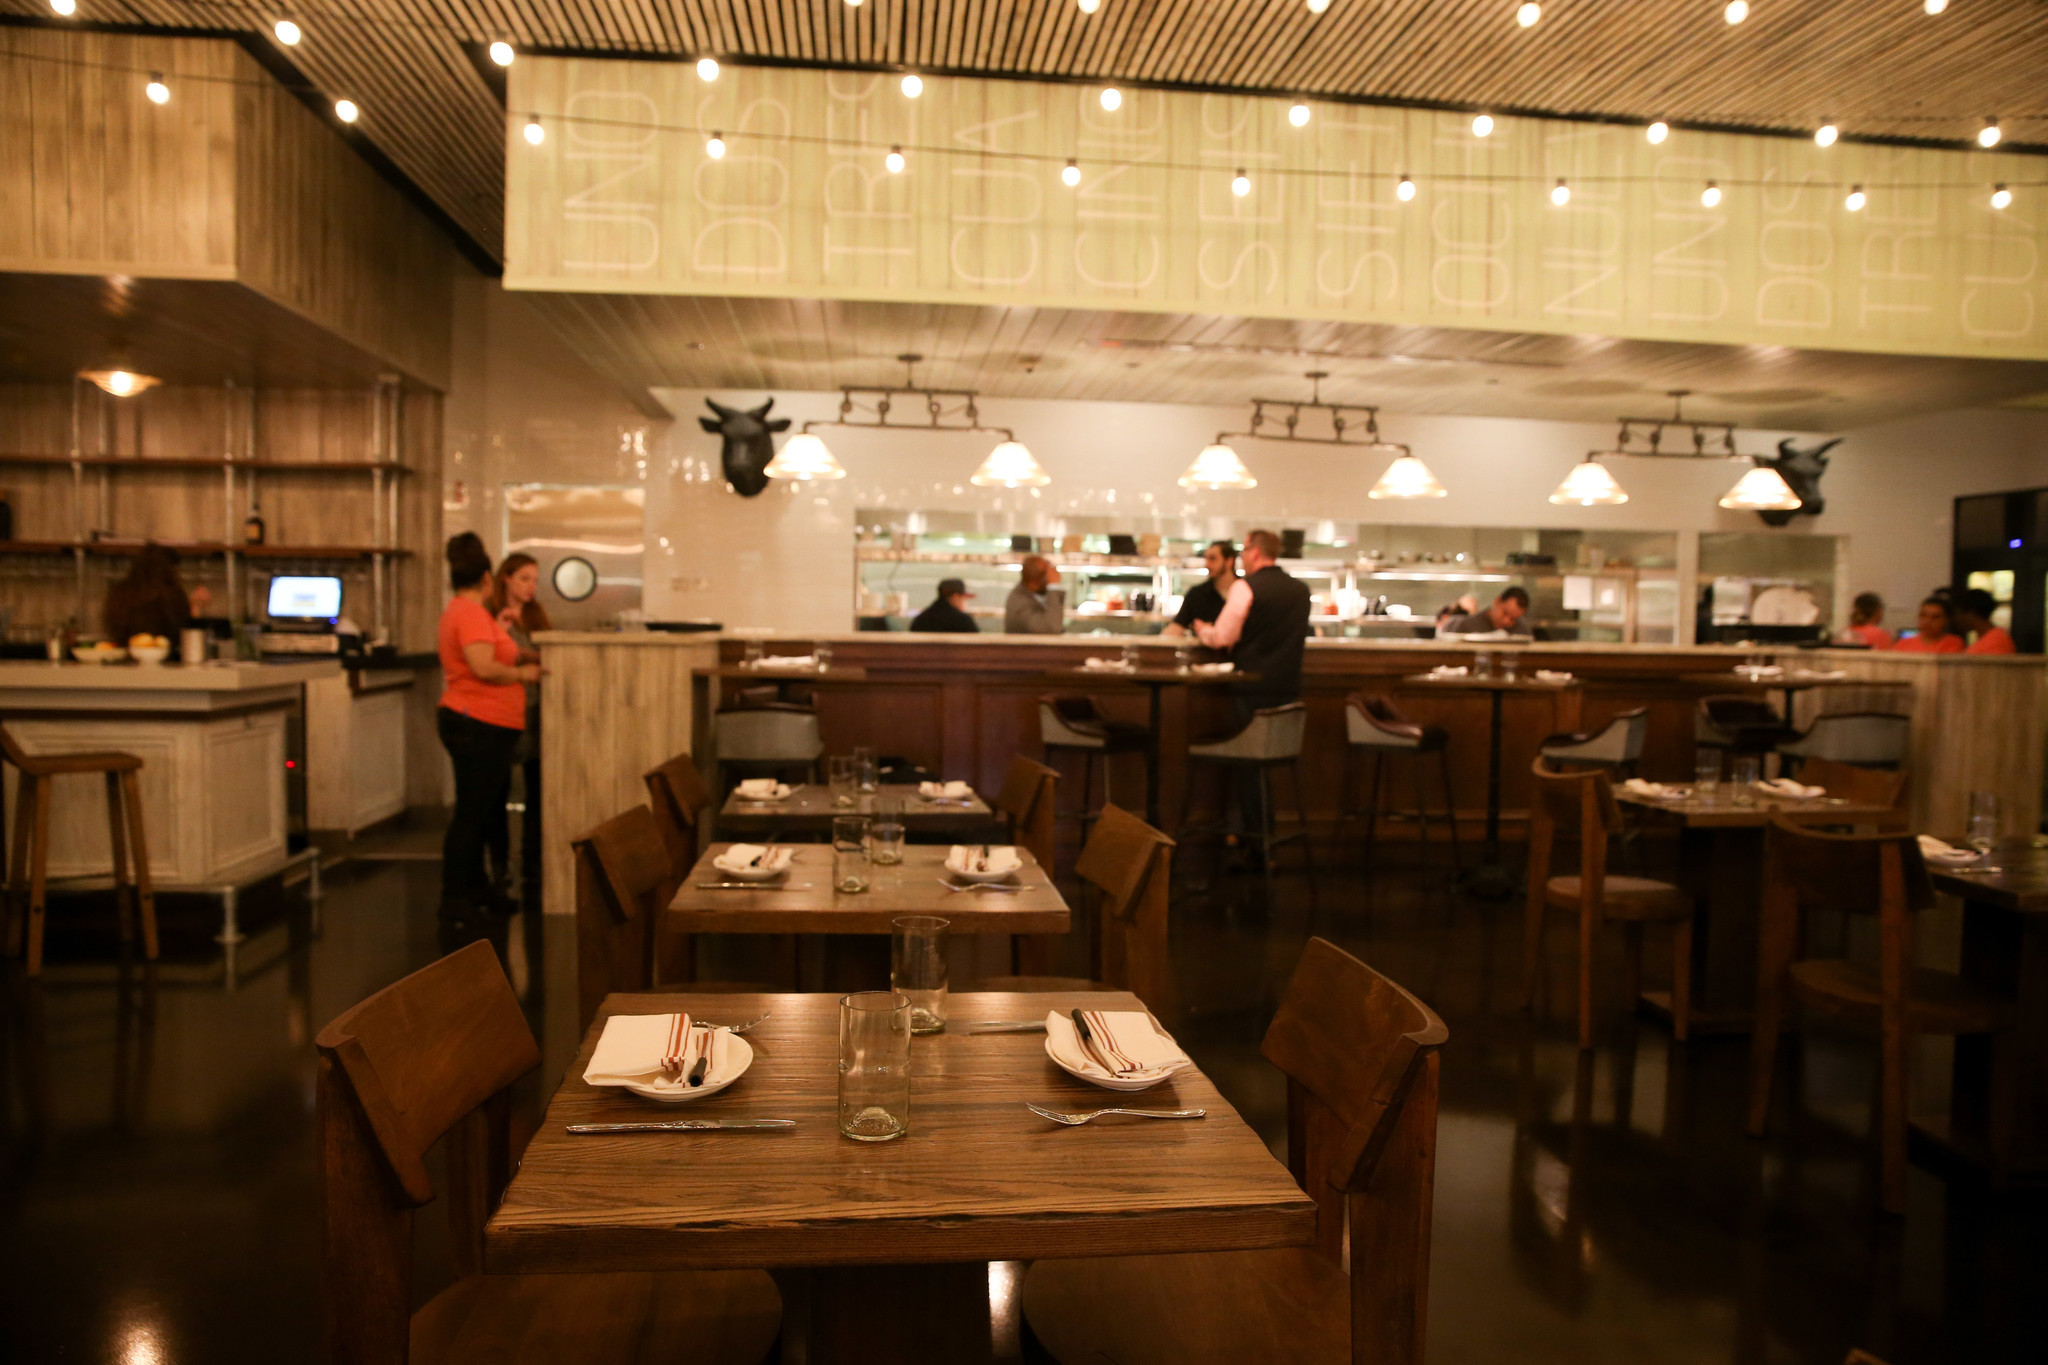 Analyst Restaurants of the future will stress delivery